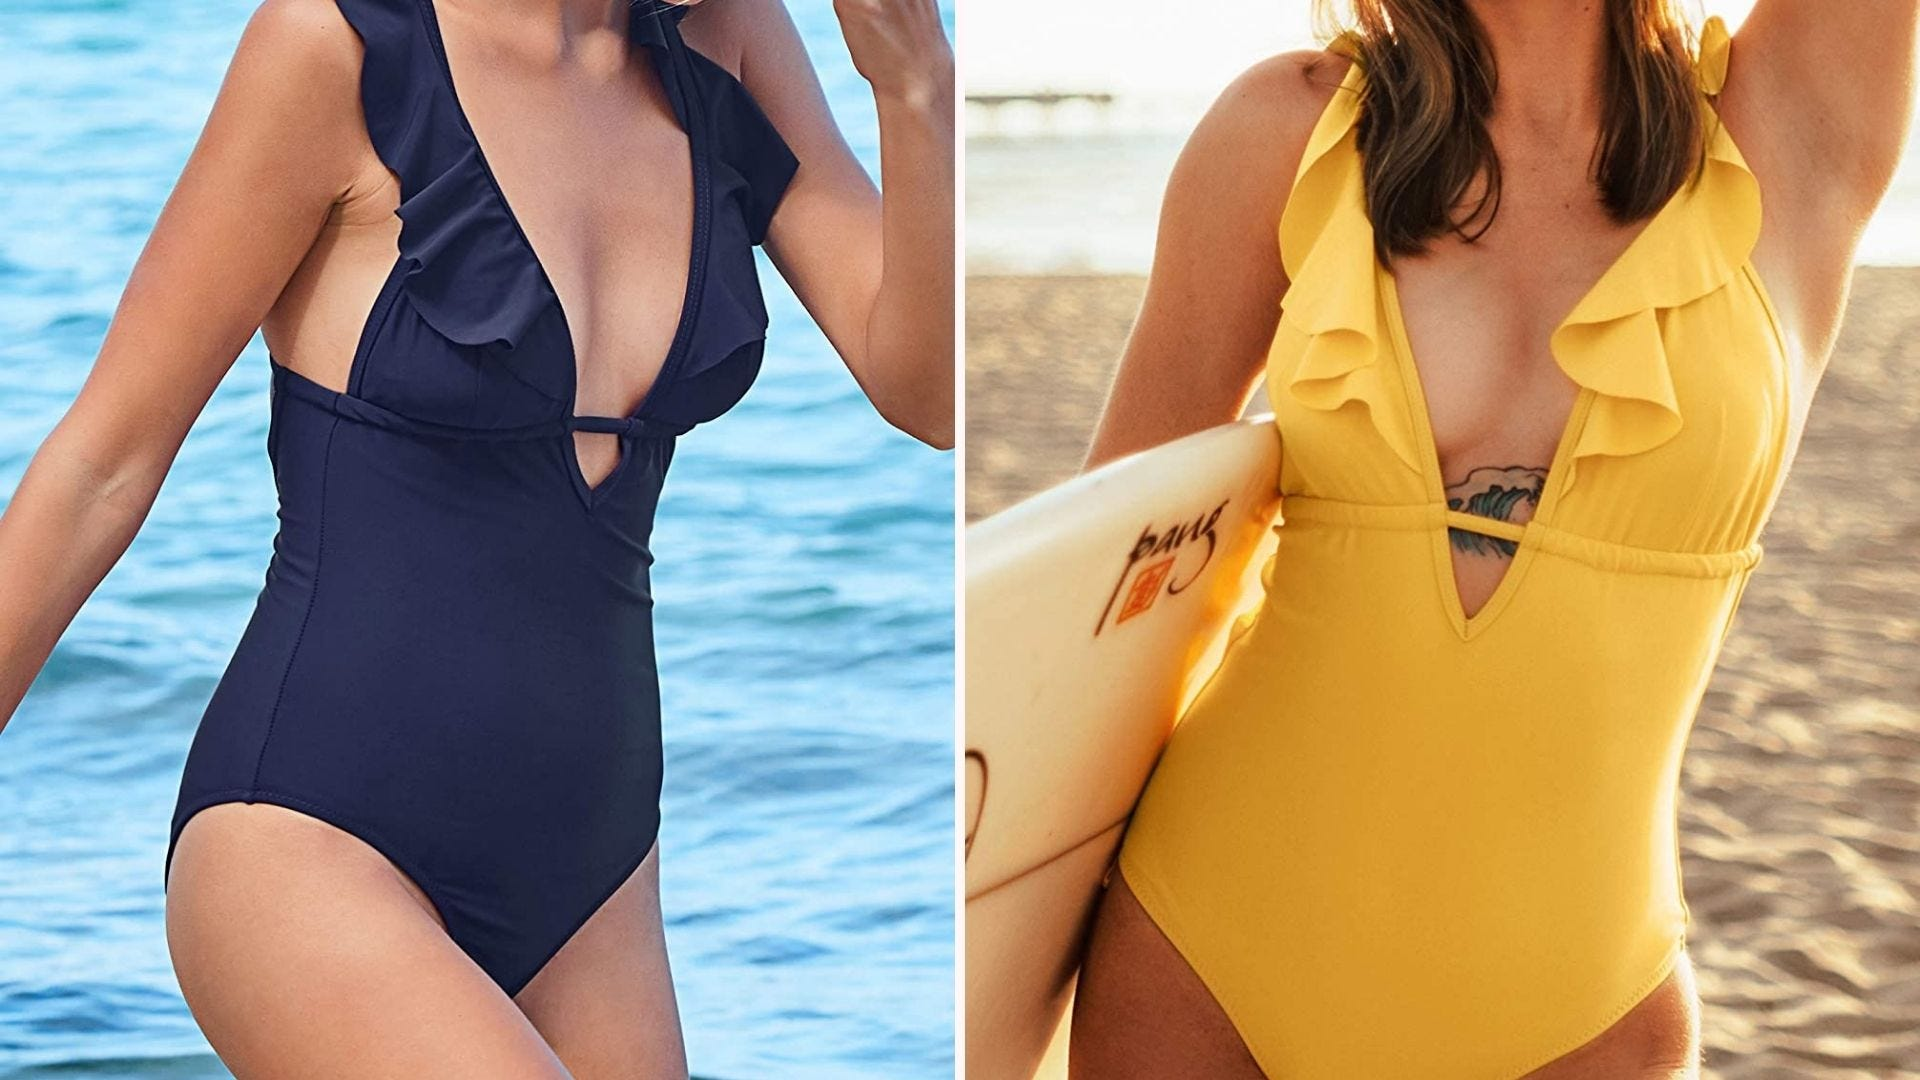 A woman in a navy blue one-piece swimsuit with a deep V-neck; a woman in the same suit, but in yellow